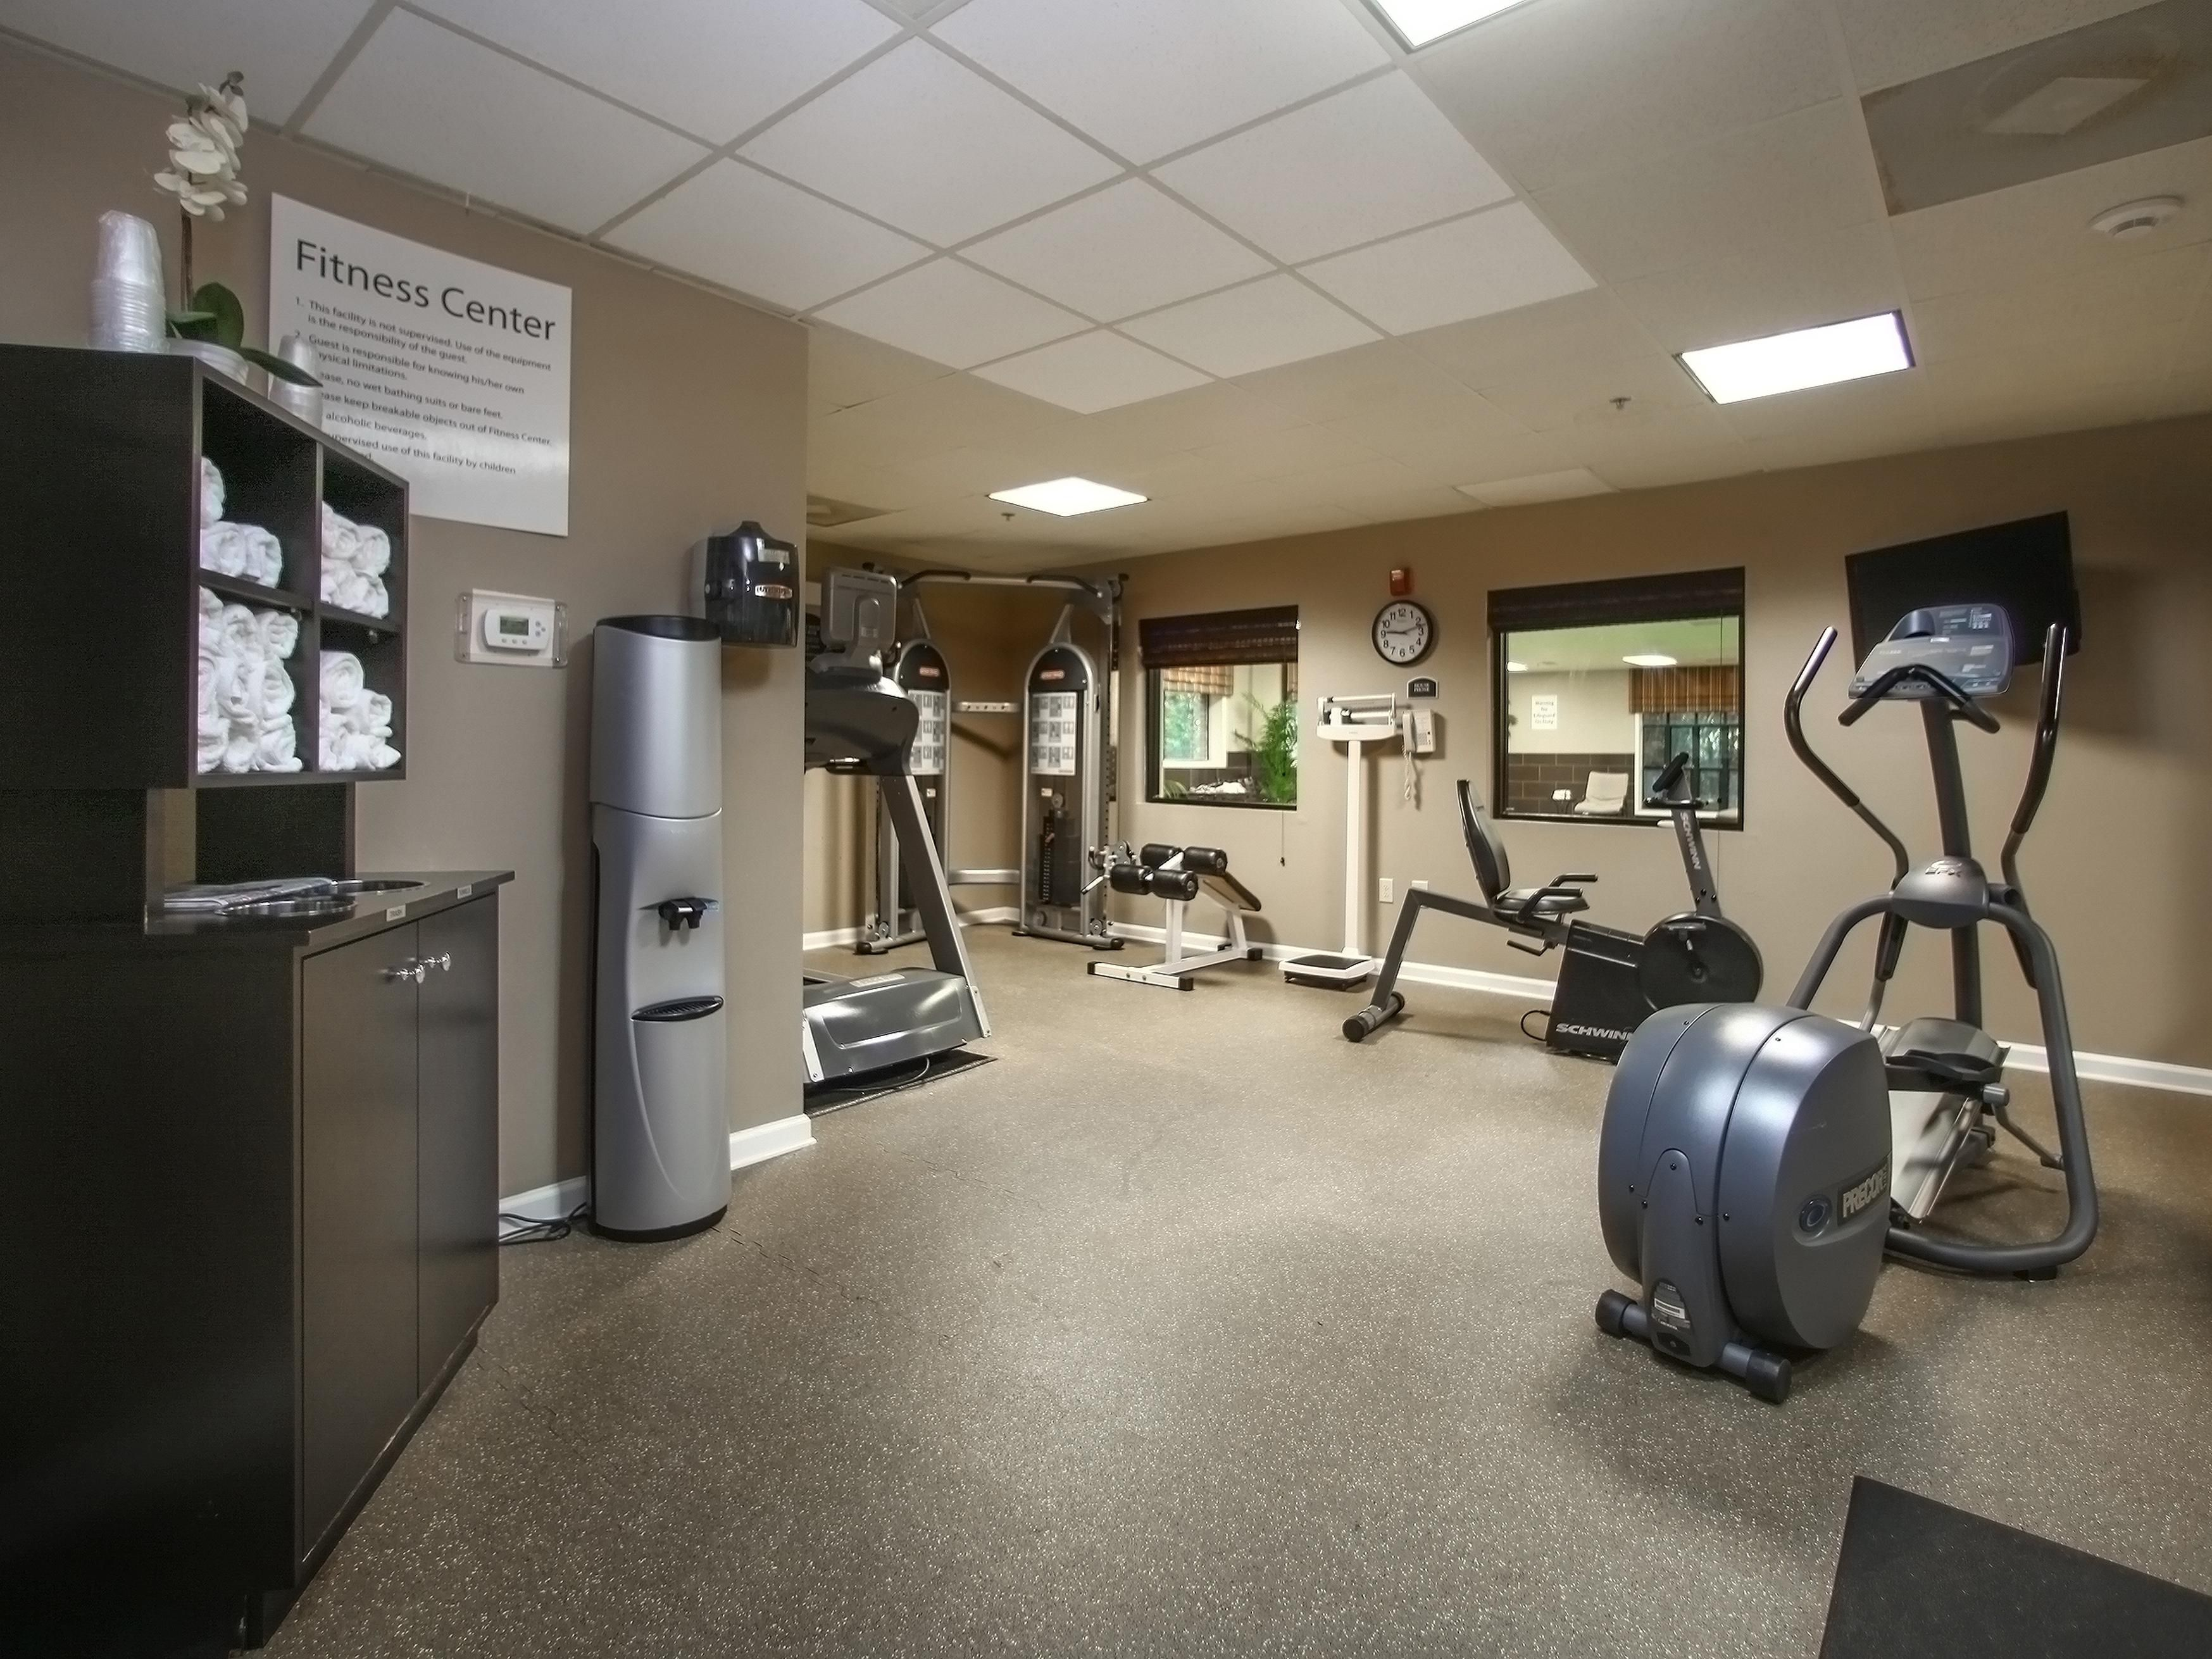 Cardiovascular Workout area